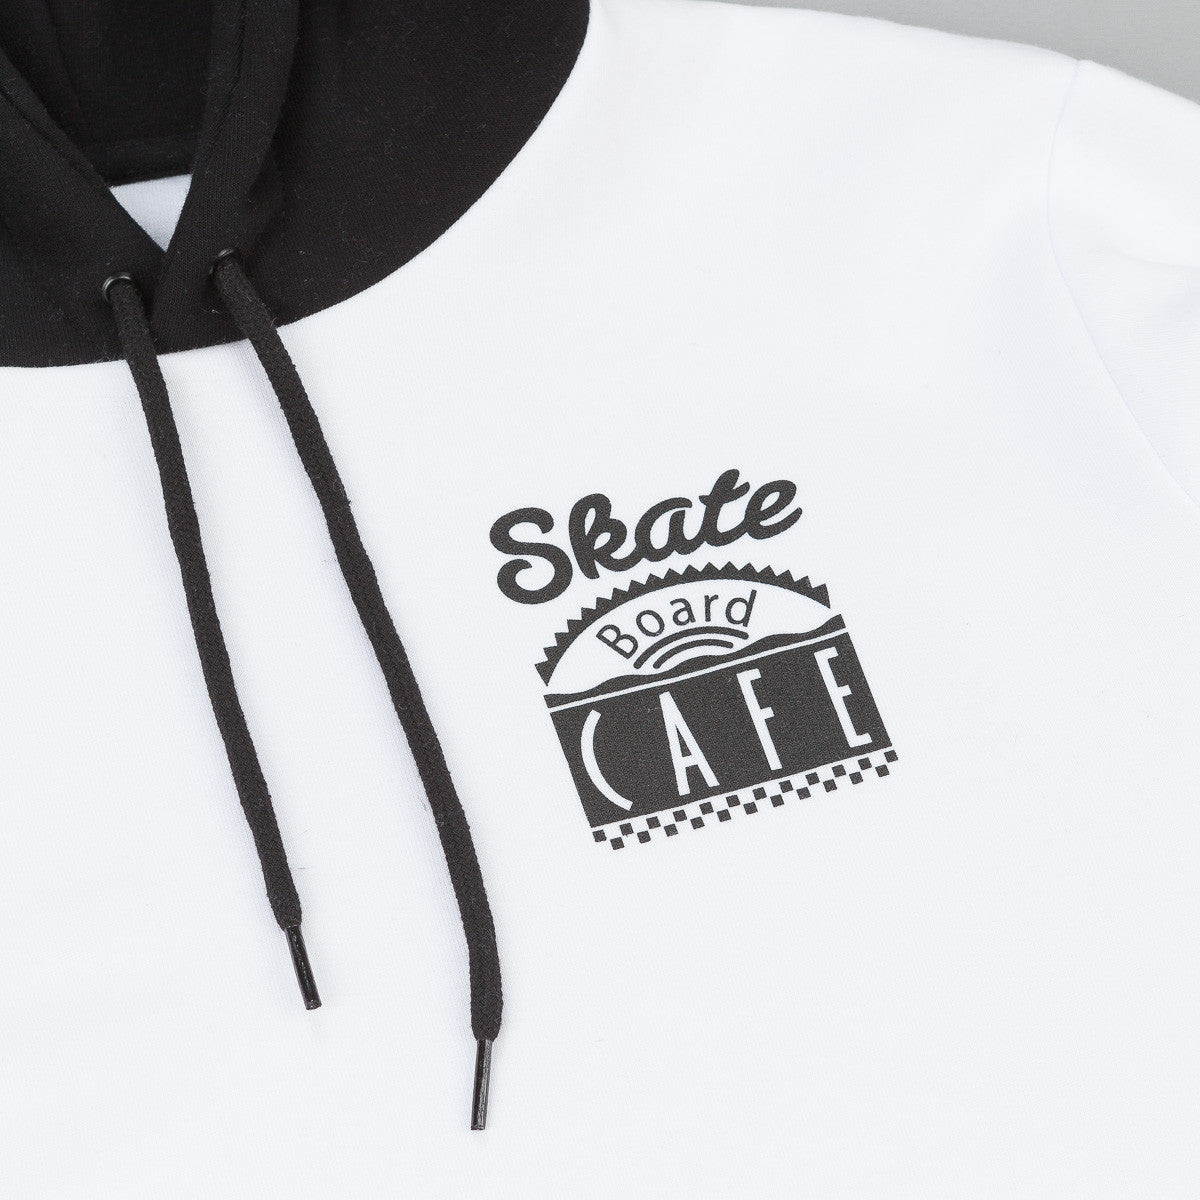 Skateboard Cafe Split Pullover Hooded Sweatshirt - White / Black